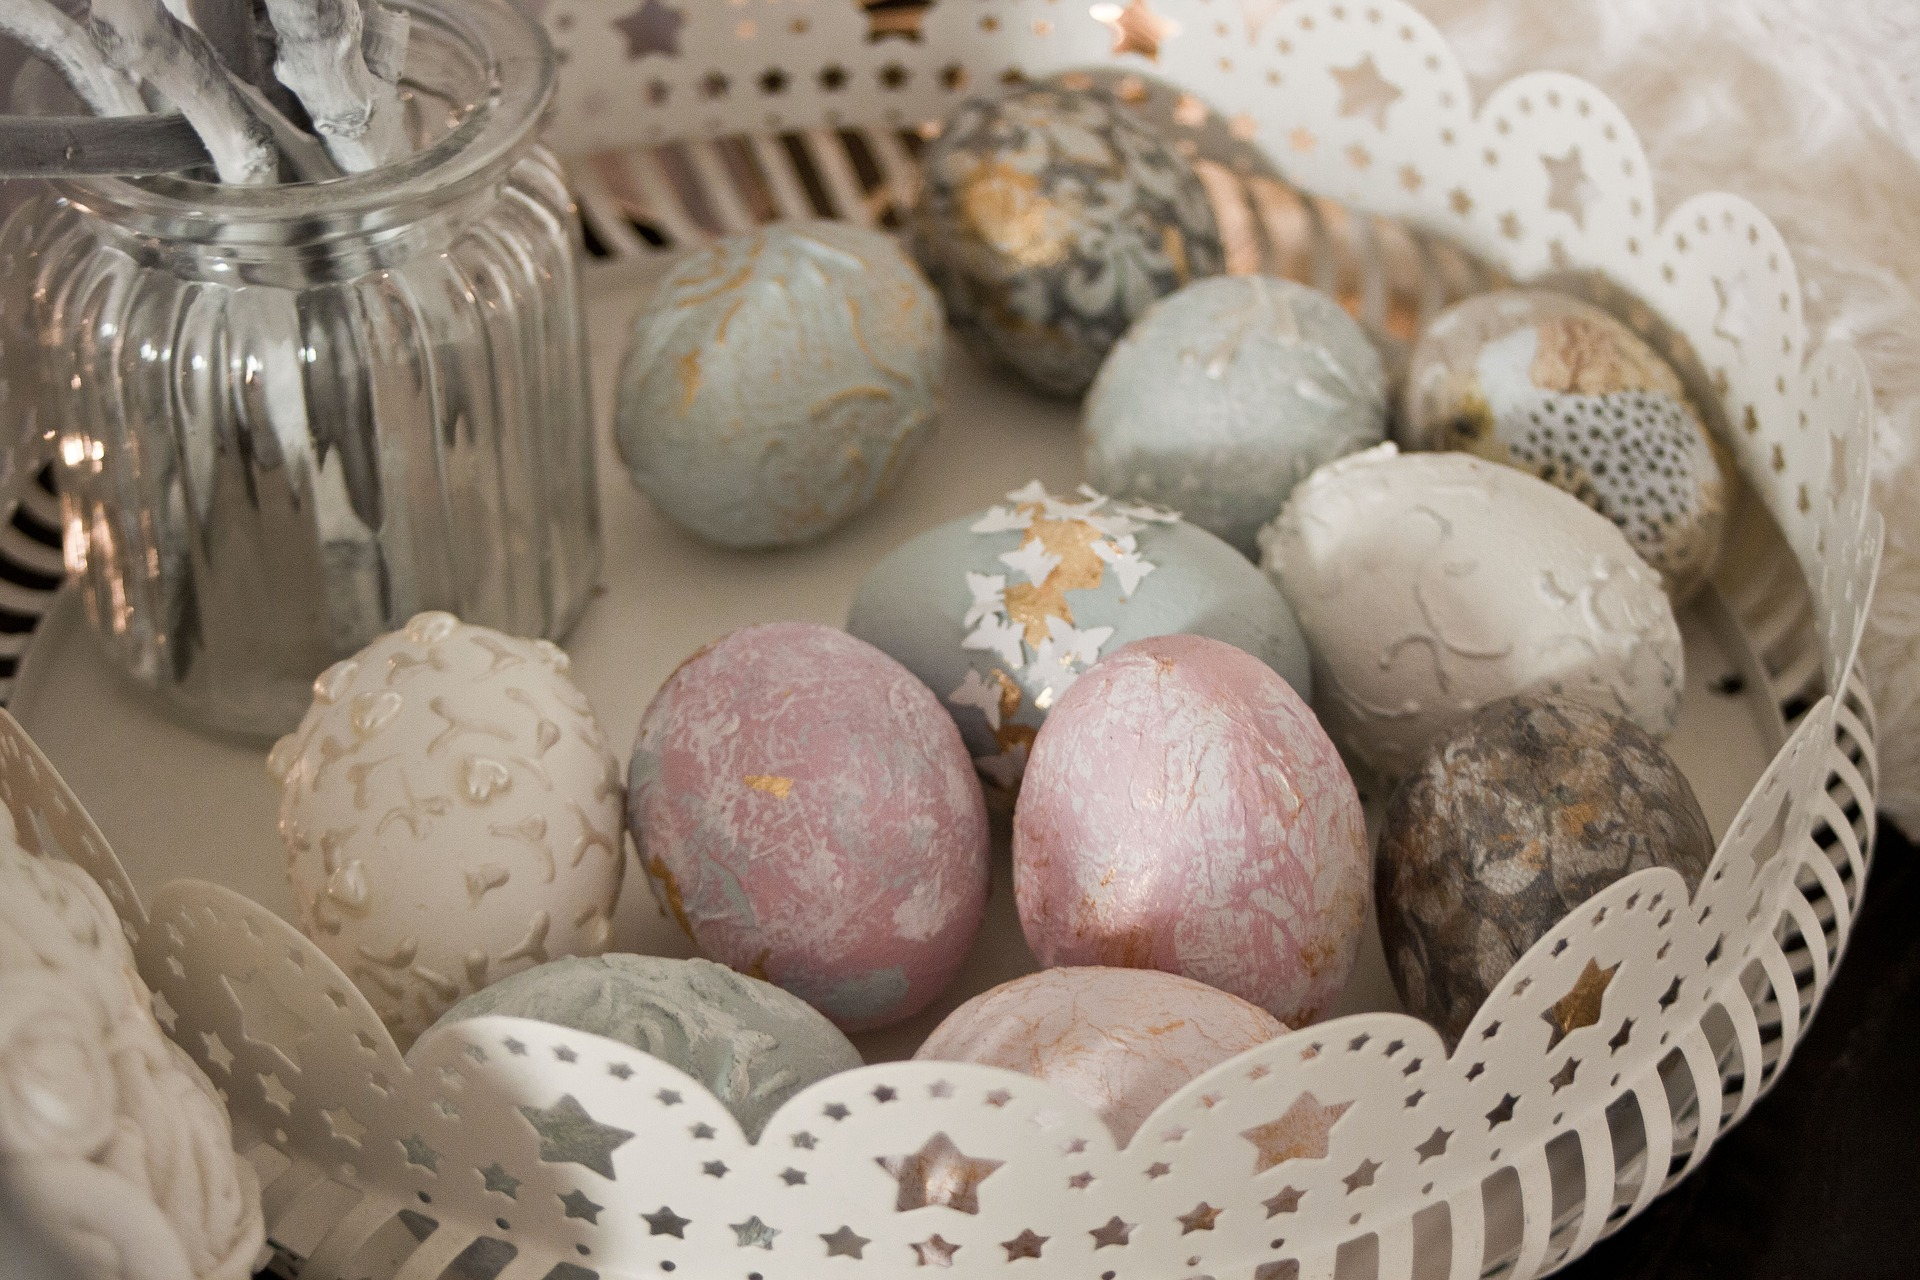 Decorative Eggs in a Basket